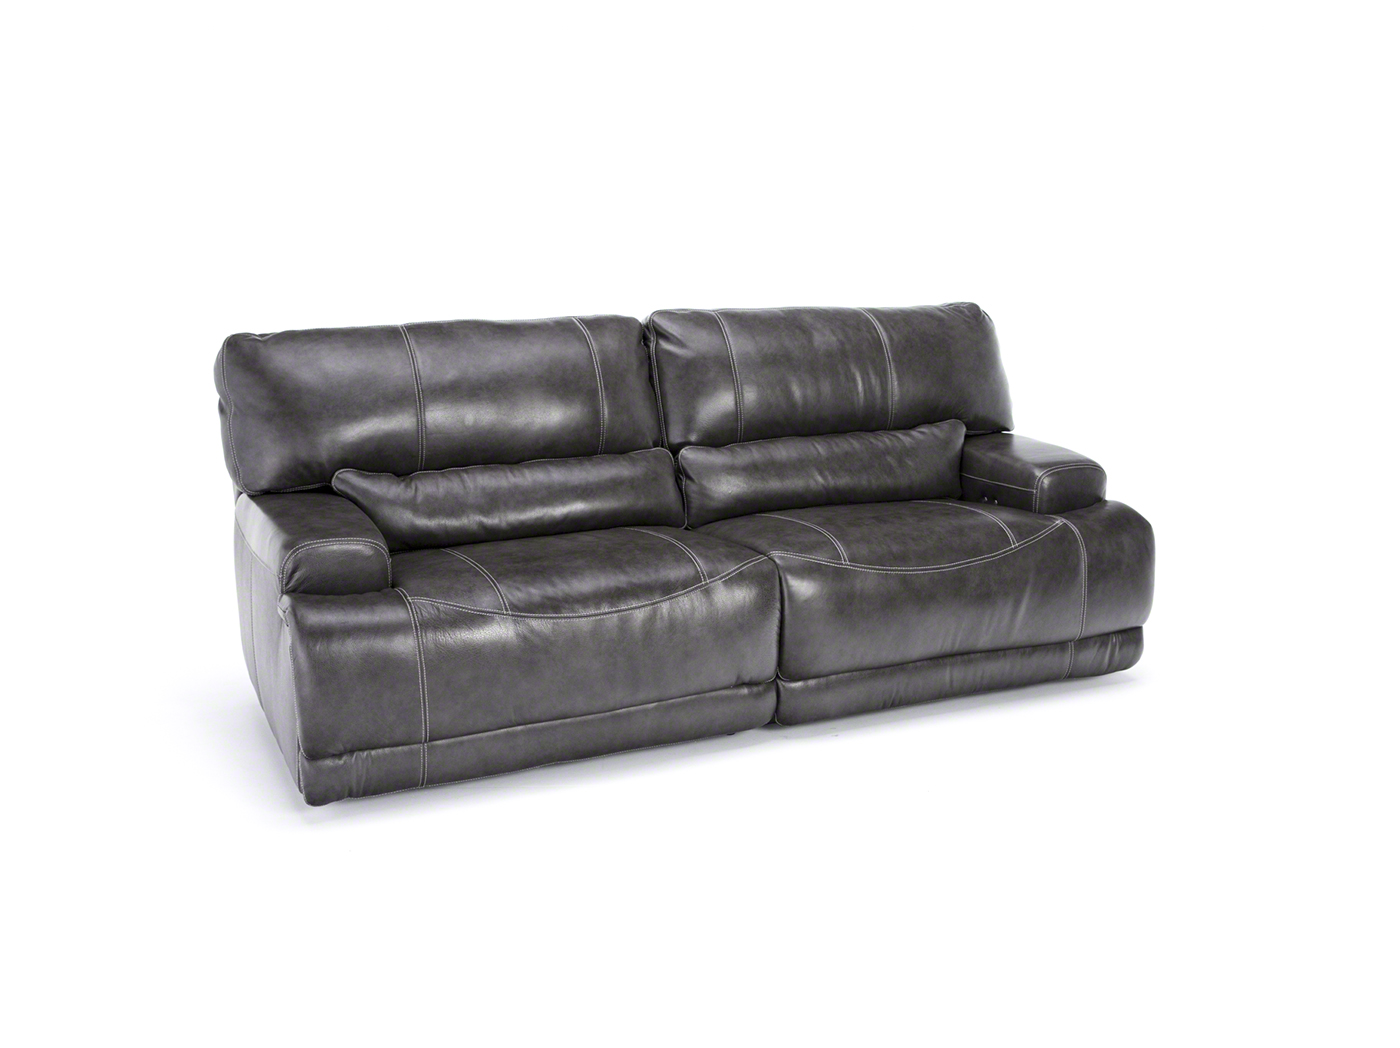 Placier Leather Recline Sofa